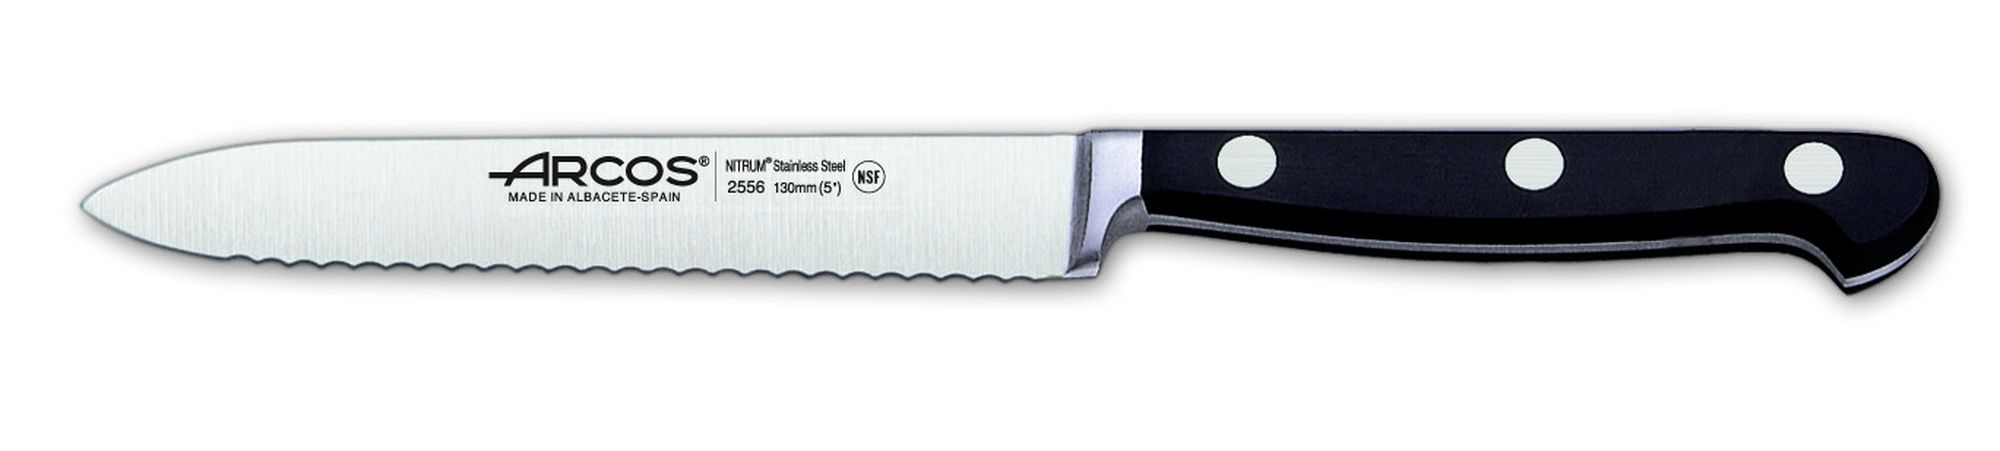 Tomato Knife Arcos ref.: 255600